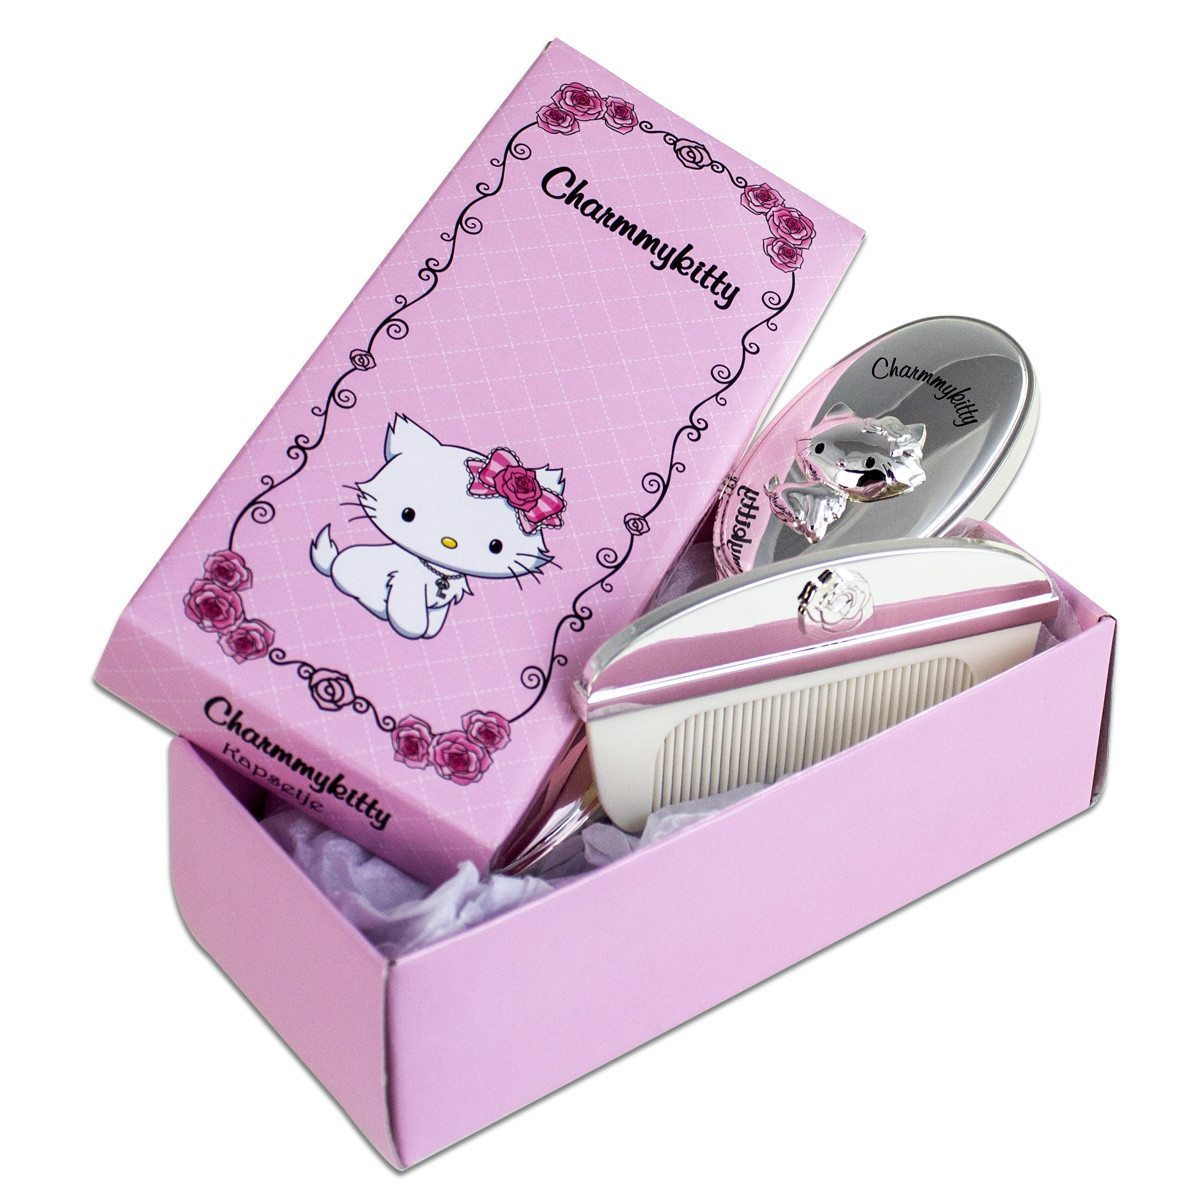 Hello Kitty – Kinder-Haarpflege-Set mit Gravur